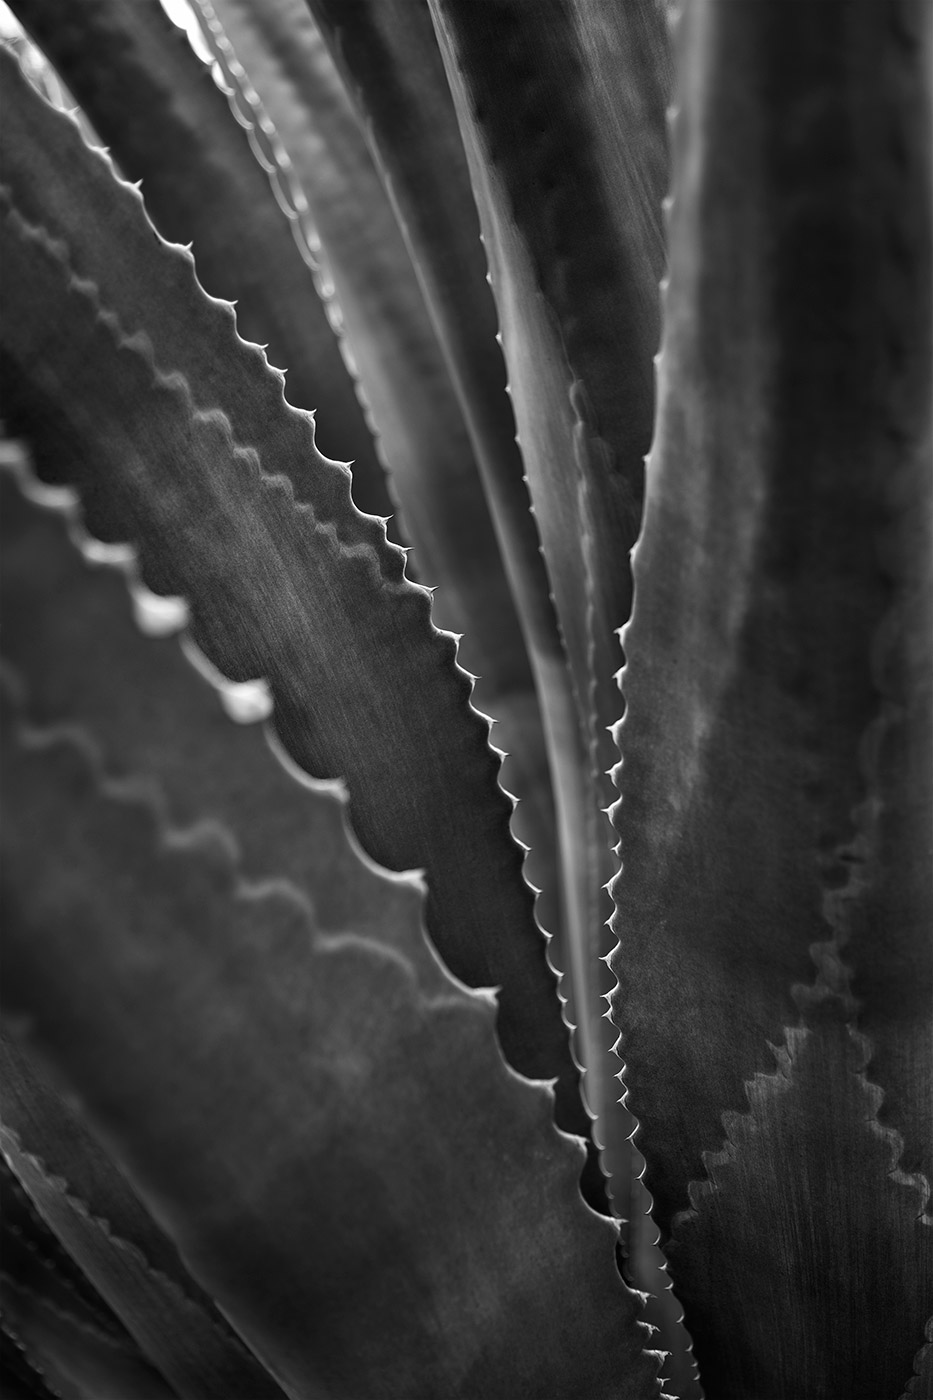 West-Texas-ABP-Agave.jpg